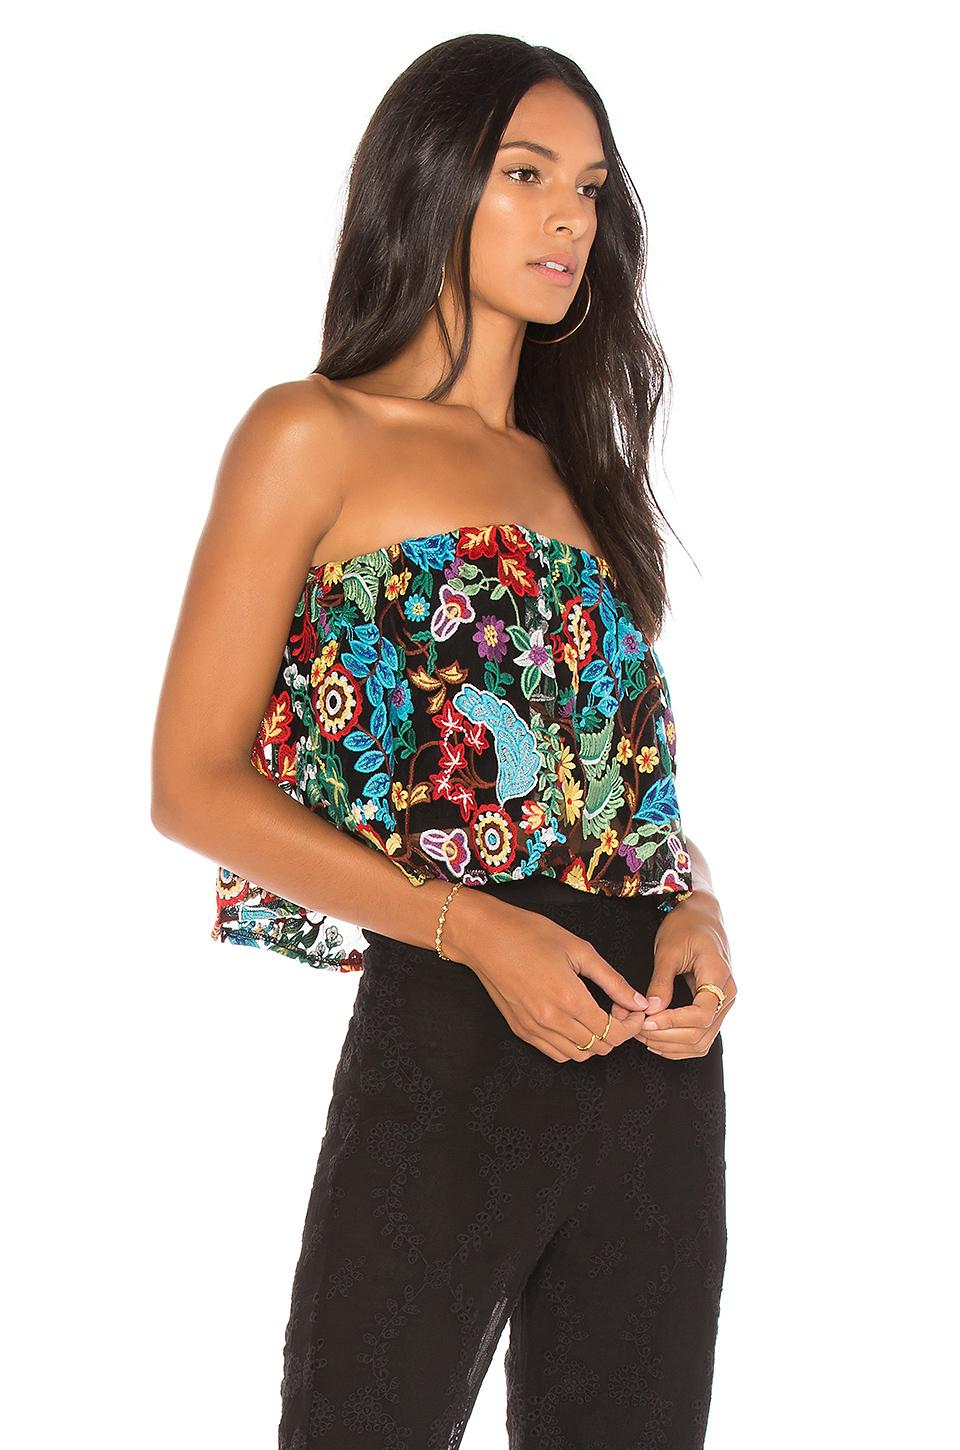 lyst - jen's pirate booty tropical forest tecual tube top in black